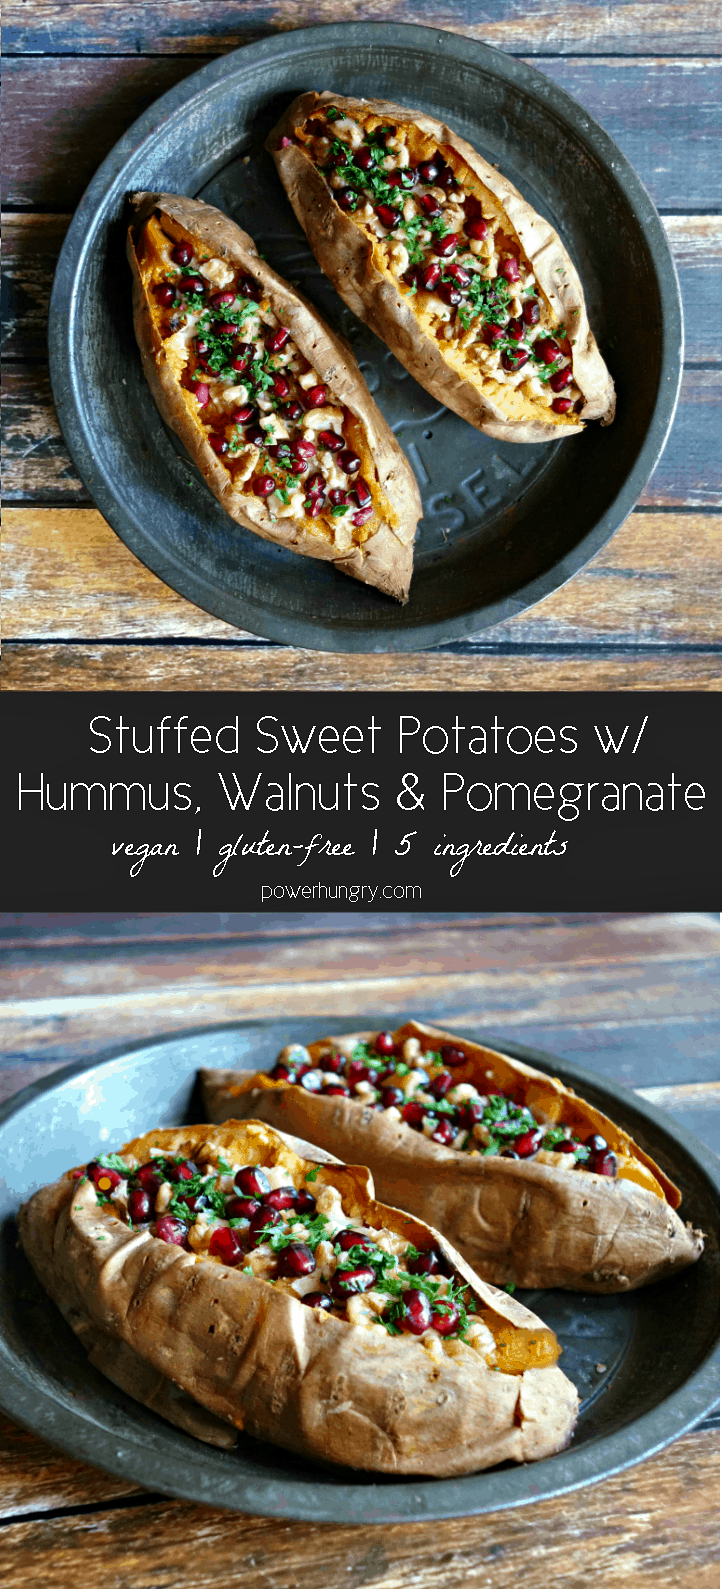 vegan supper stuffed sweet potatoes with hummus, walnuts and pomegranate